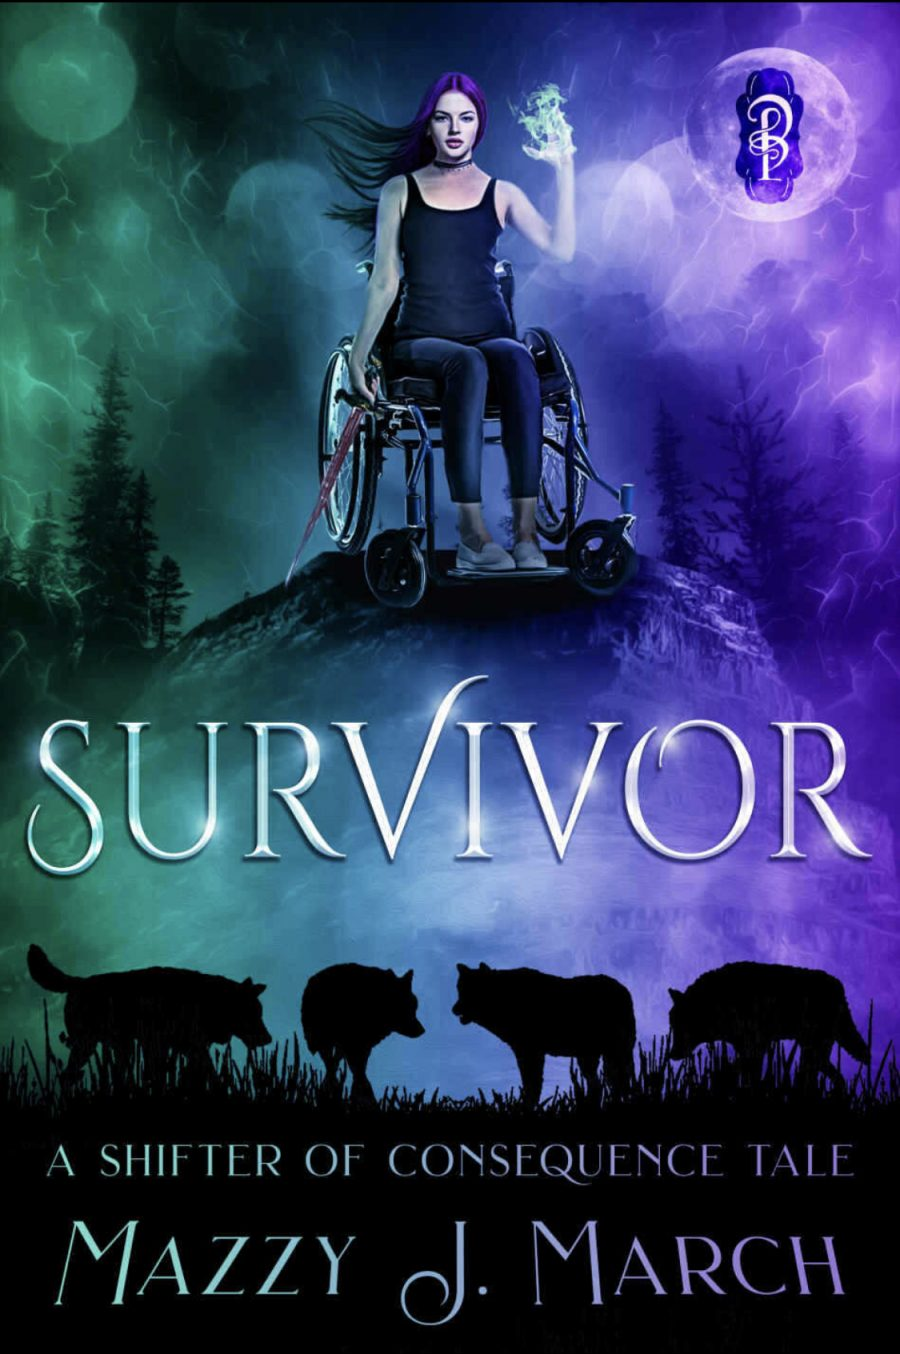 Survivor (A Shifter of Consequence - Book 1) by Mazzy J. March - A Book Review #BookReview #PNR #SlowBurn #RH #KindleUnlimited #KU